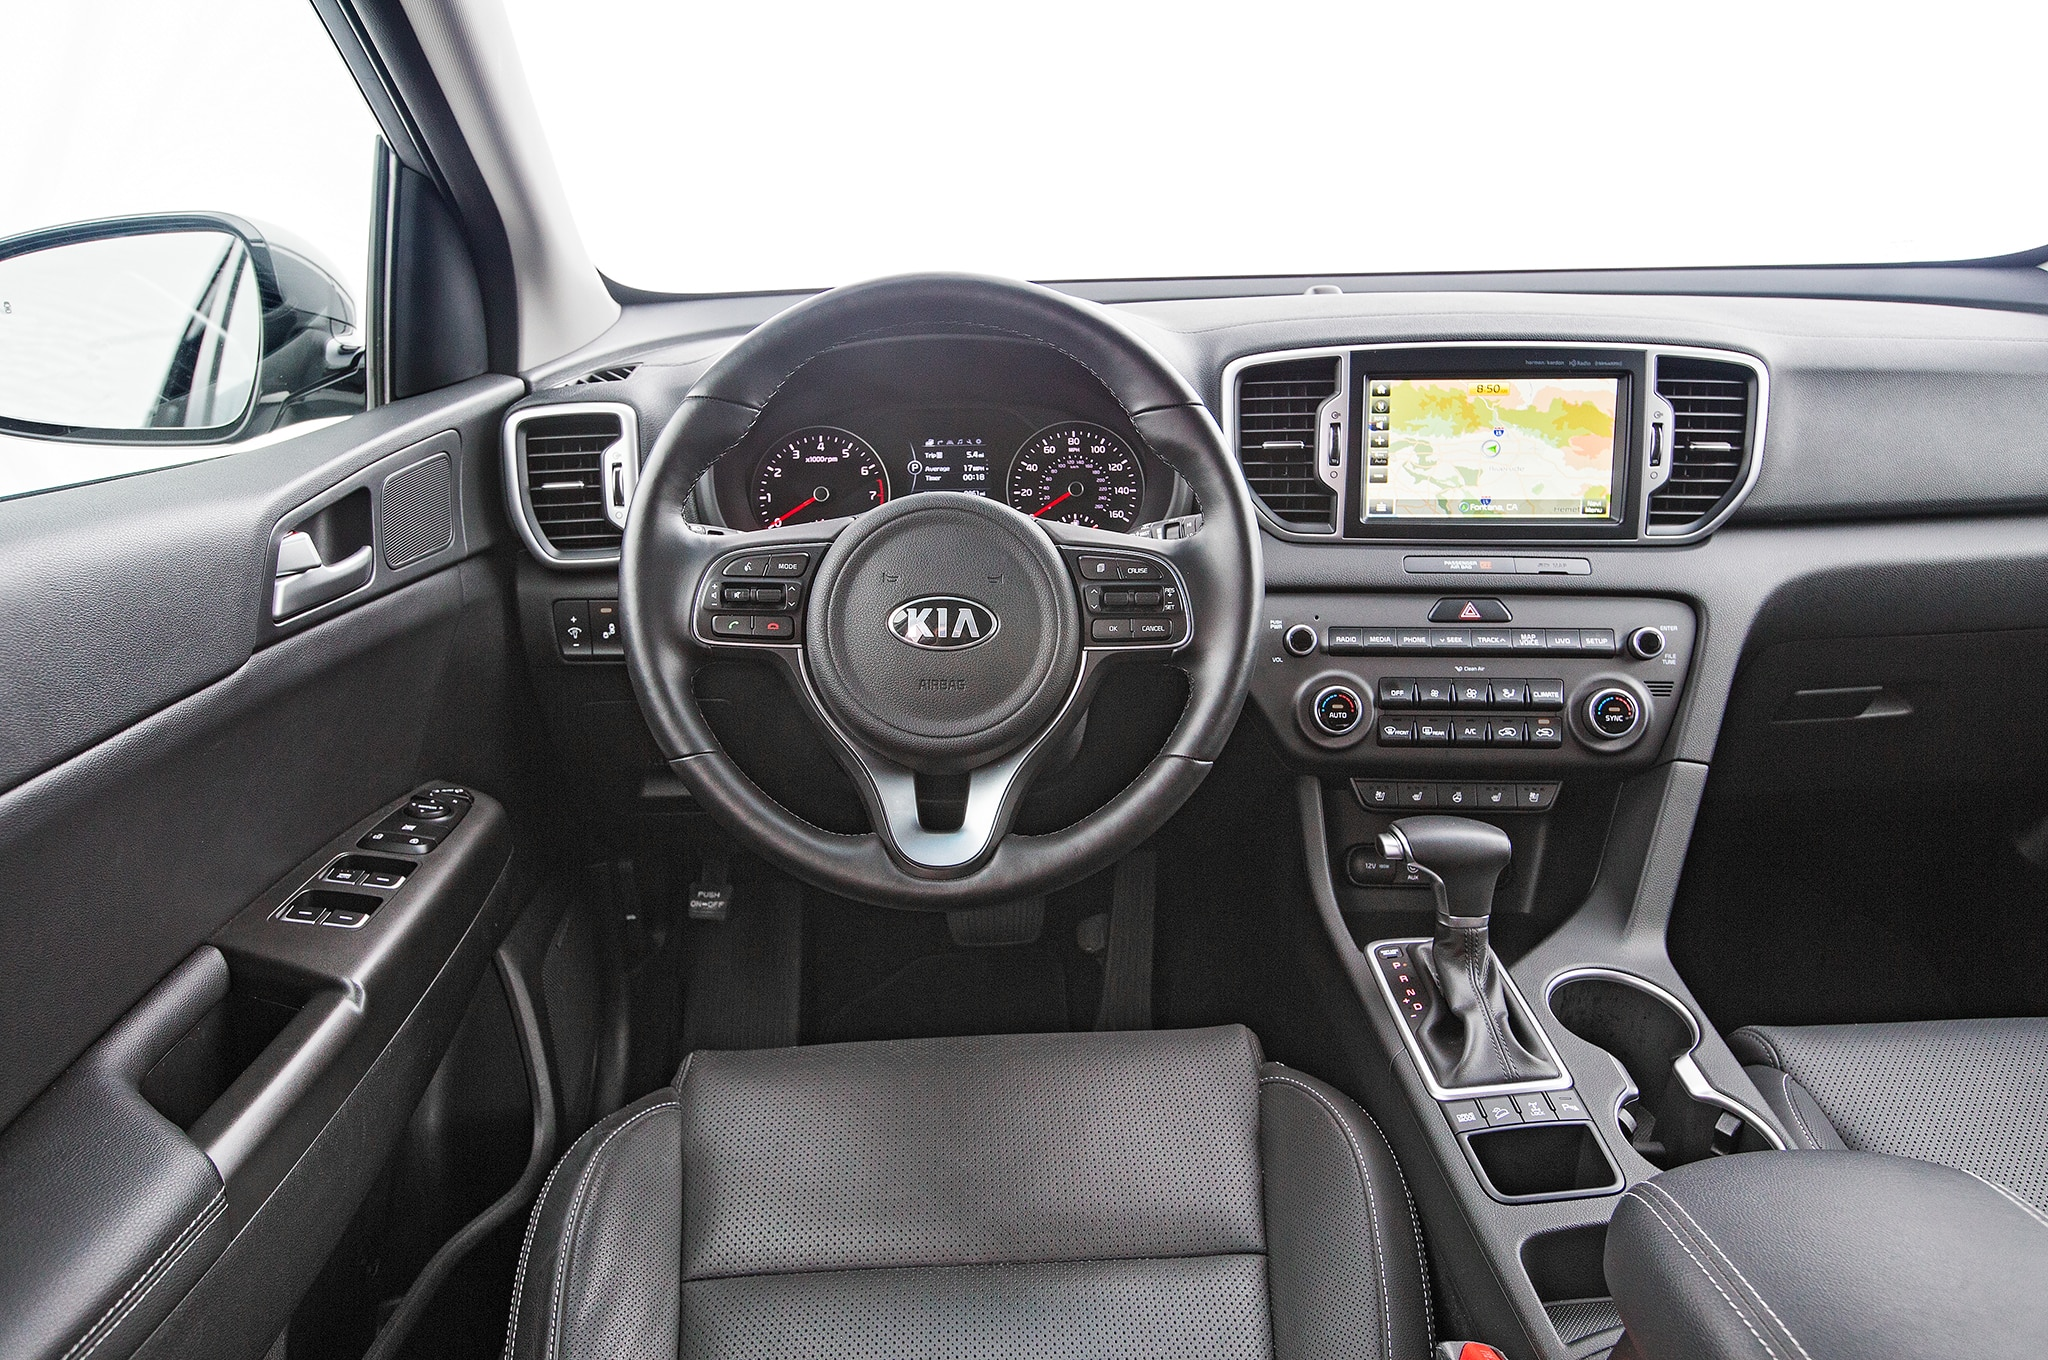 2017 kia sportage shows its interior ahead of frankfurt